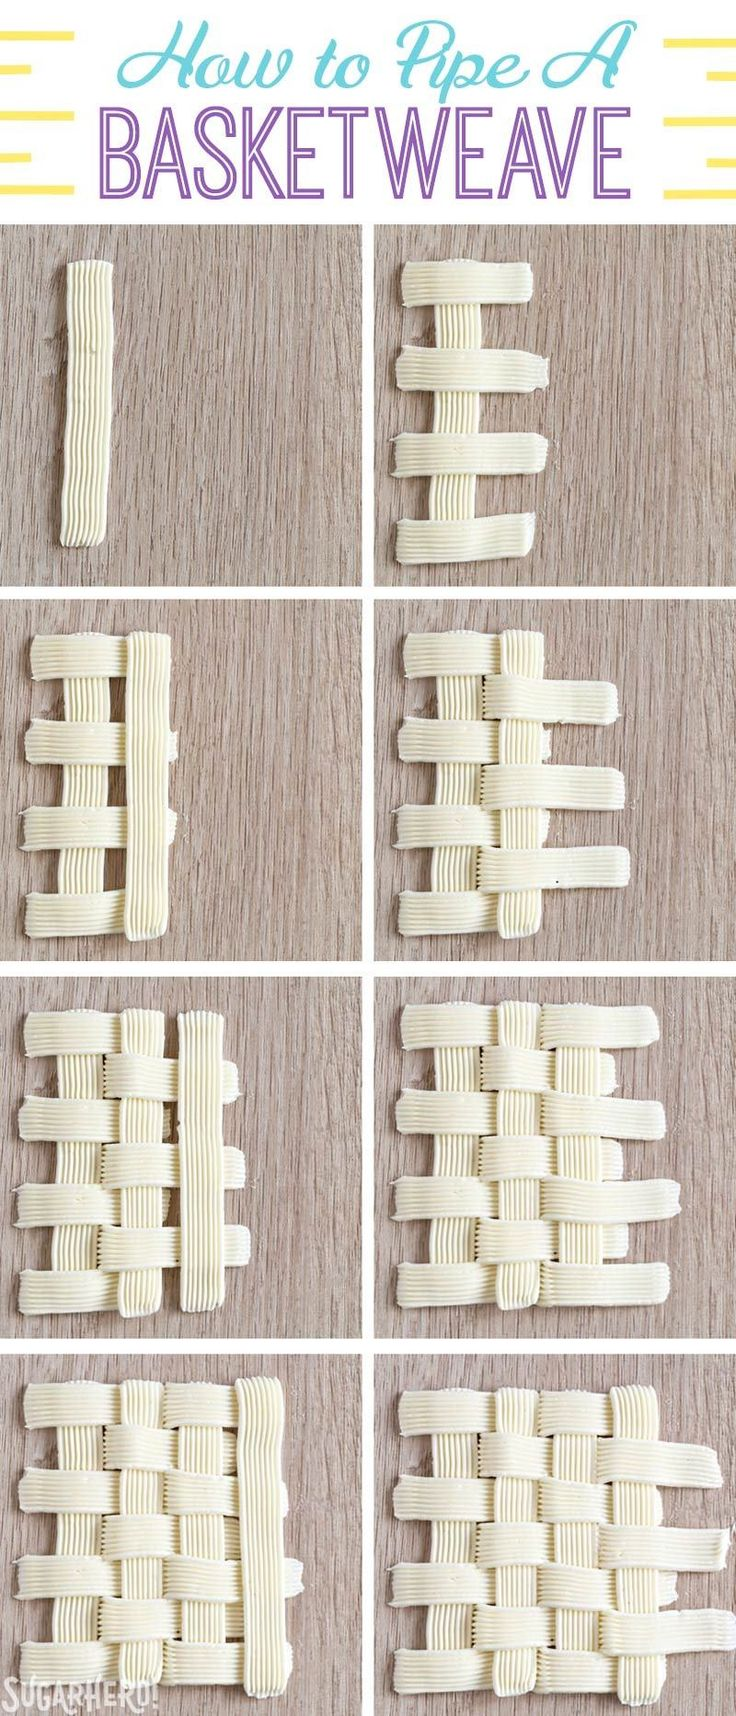 How to Pipe A Basketweave Pattern with Buttercream   From SugarHero.com